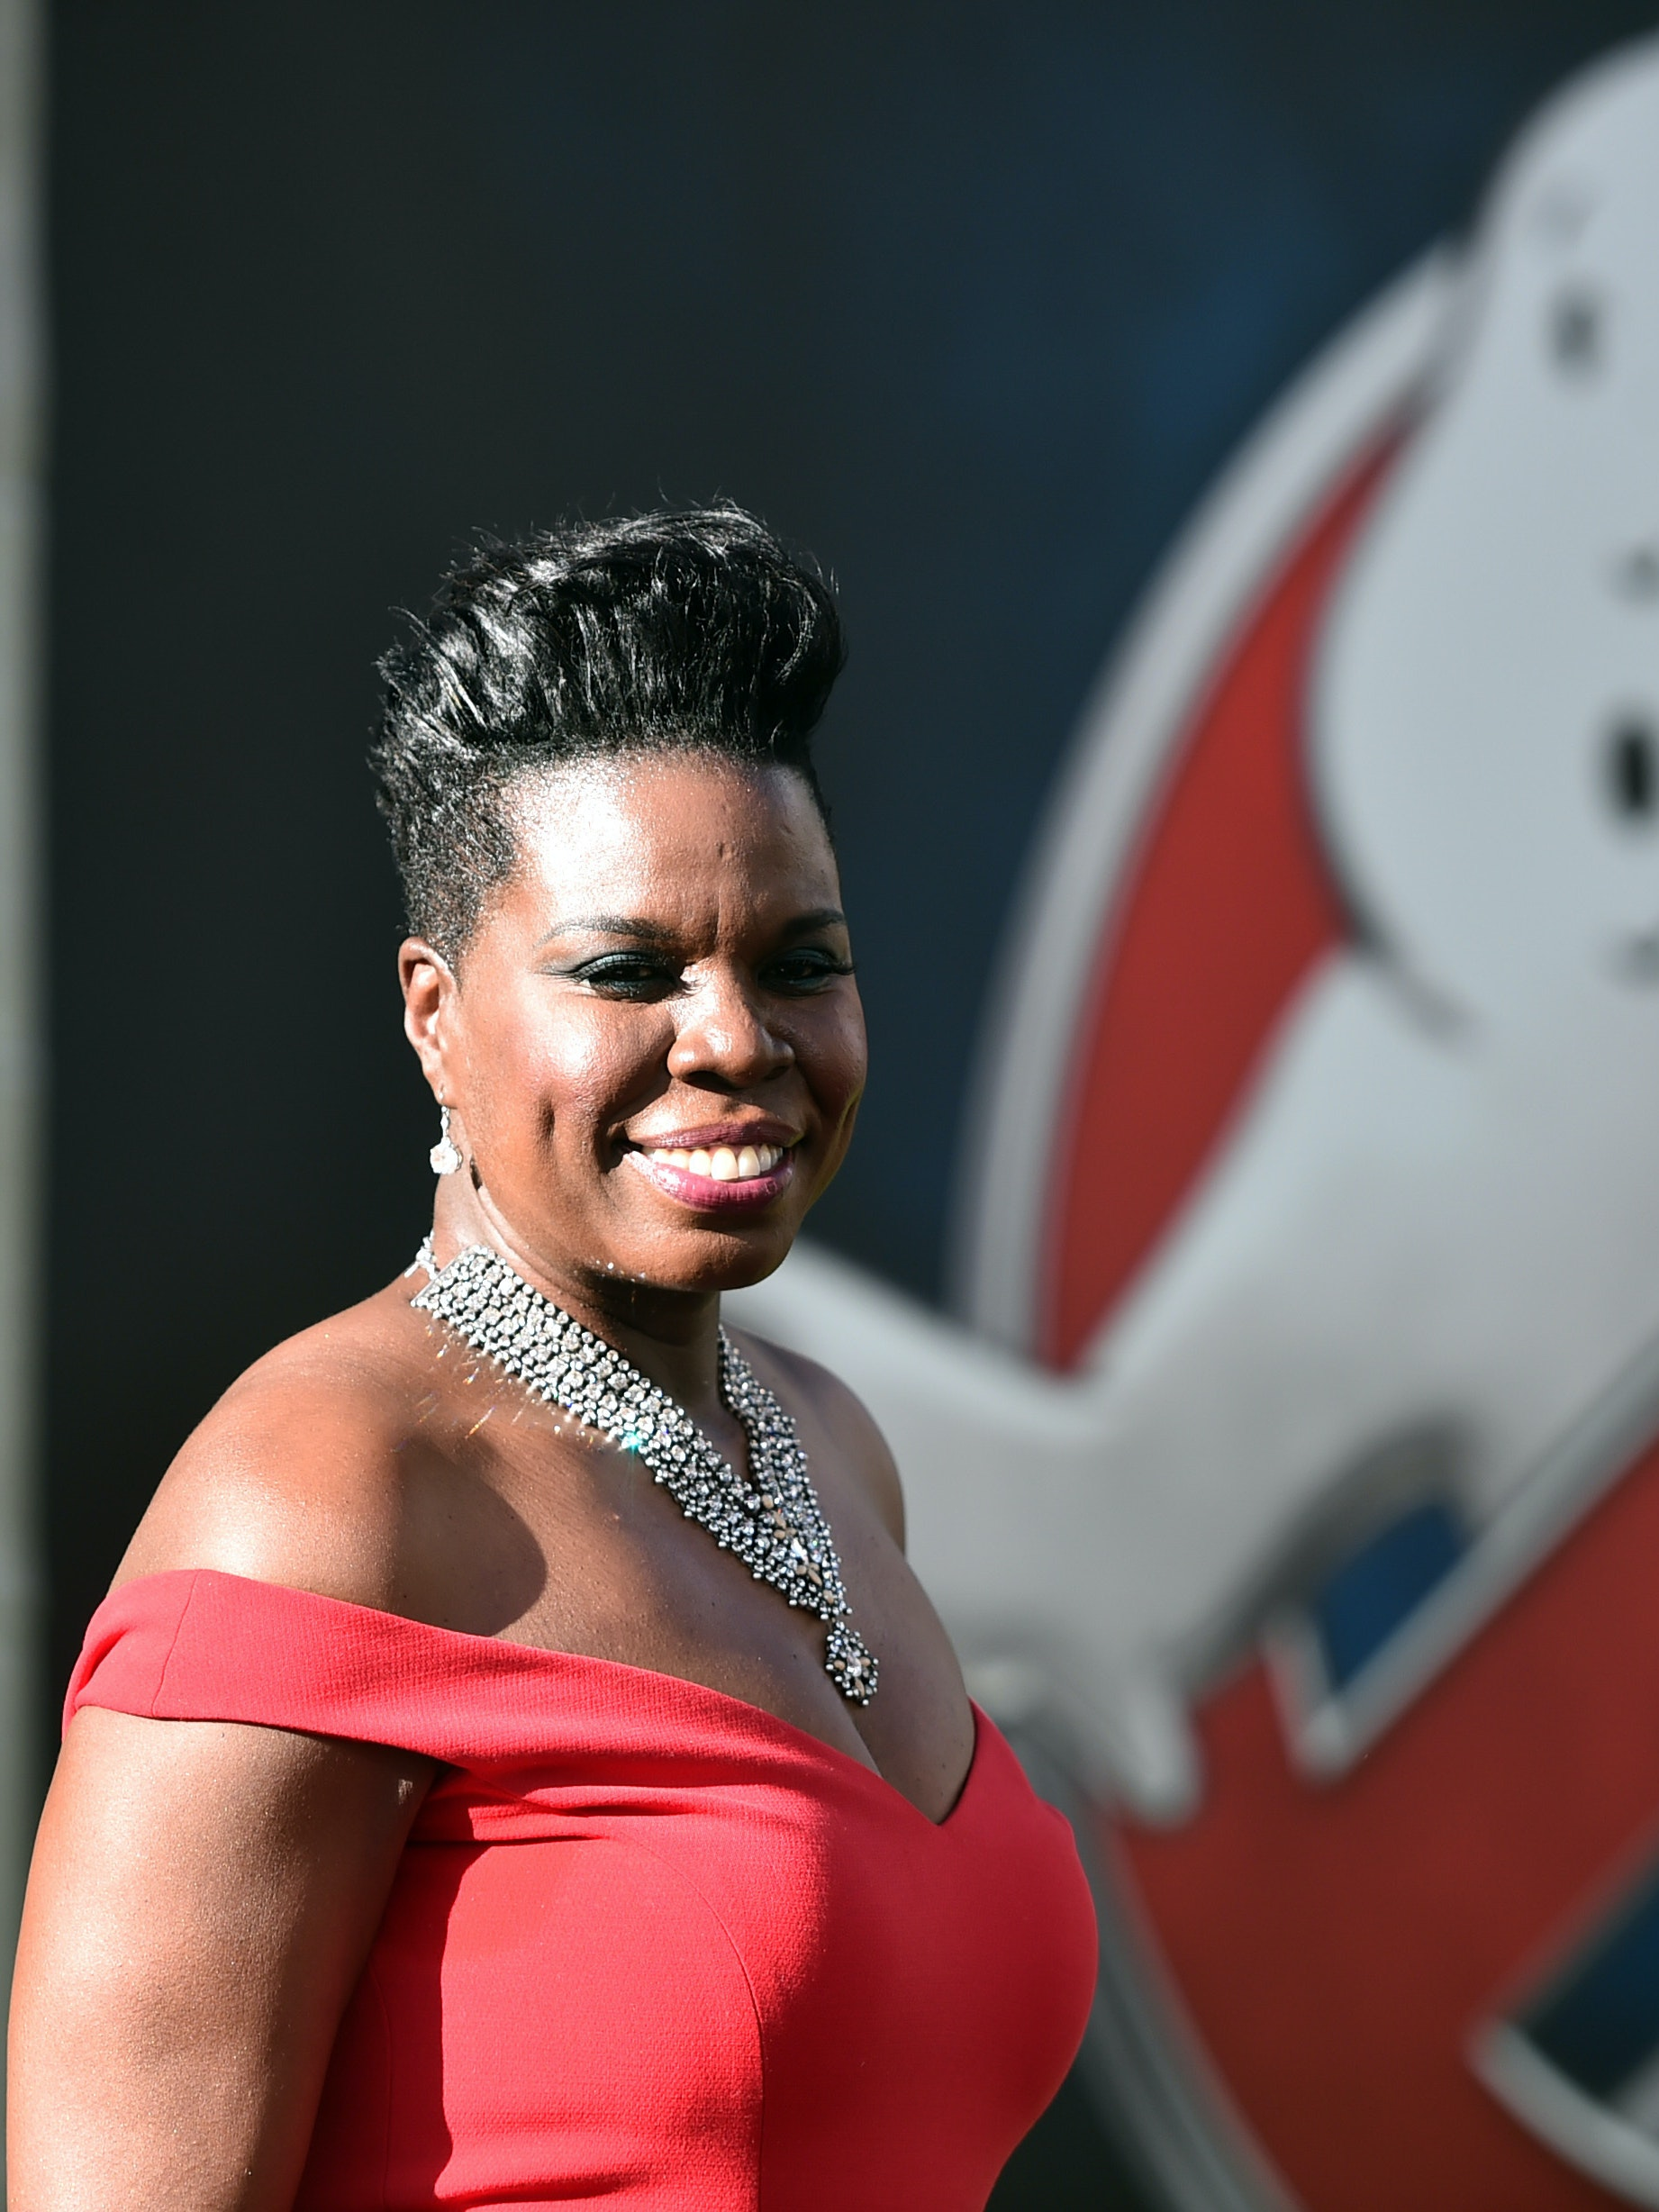 Actress Leslie Jones attends the Premiere of Sony Pictures' 'Ghostbusters' at TCL Chinese Theatre on July 9, 2016 in Hollywood, California.